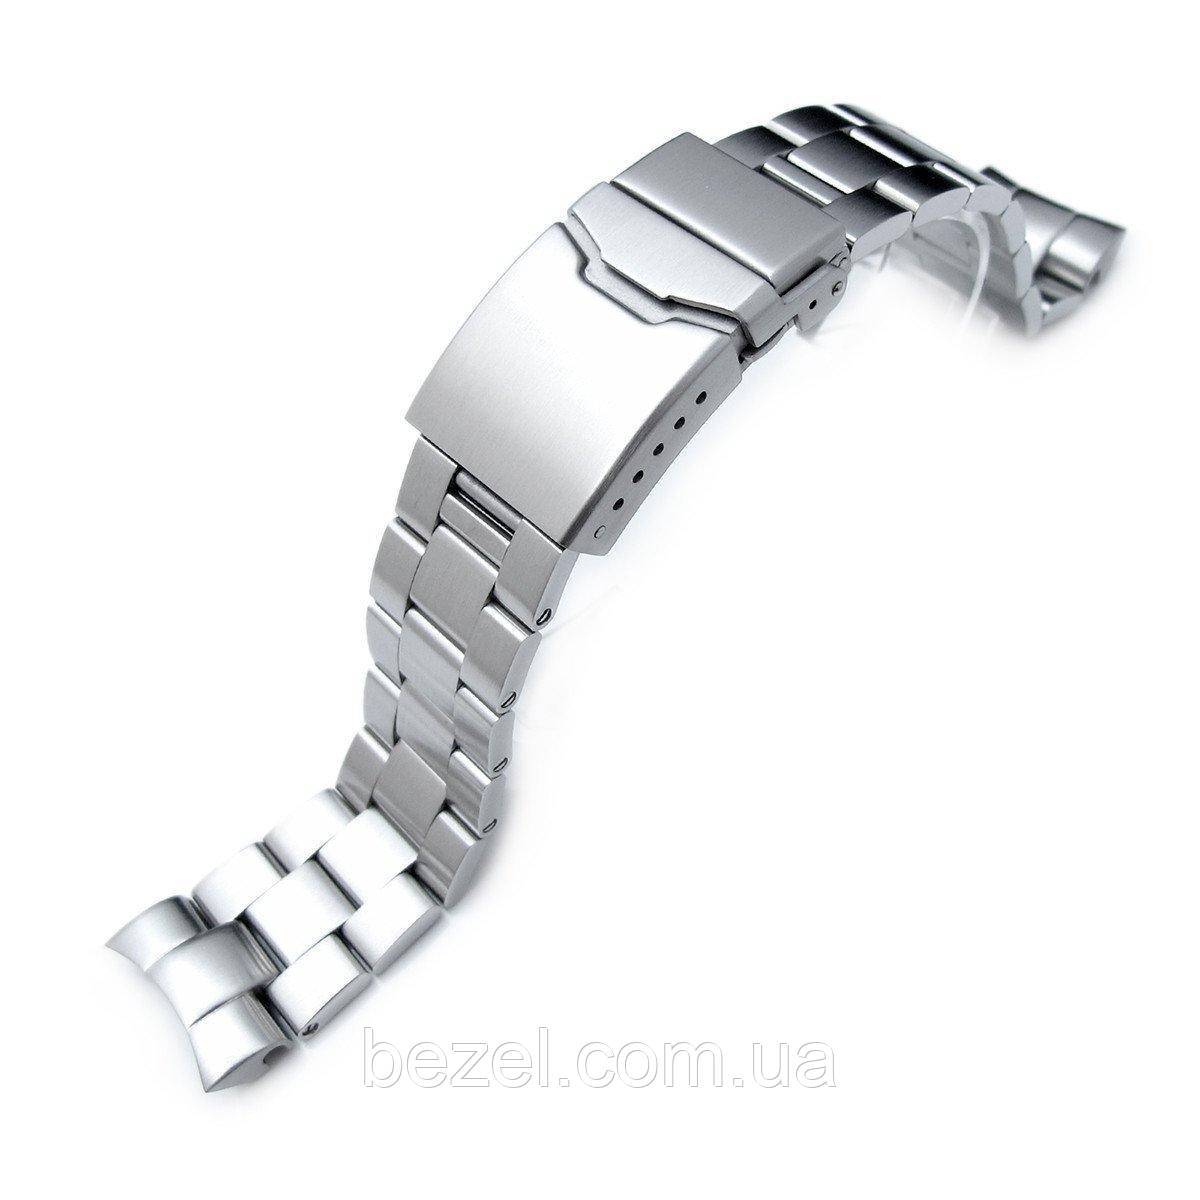 22mm Super Oyster Watch Bracelet for SEIKO SNZF17 Sea Urchin, Button Chamfer, Brushed